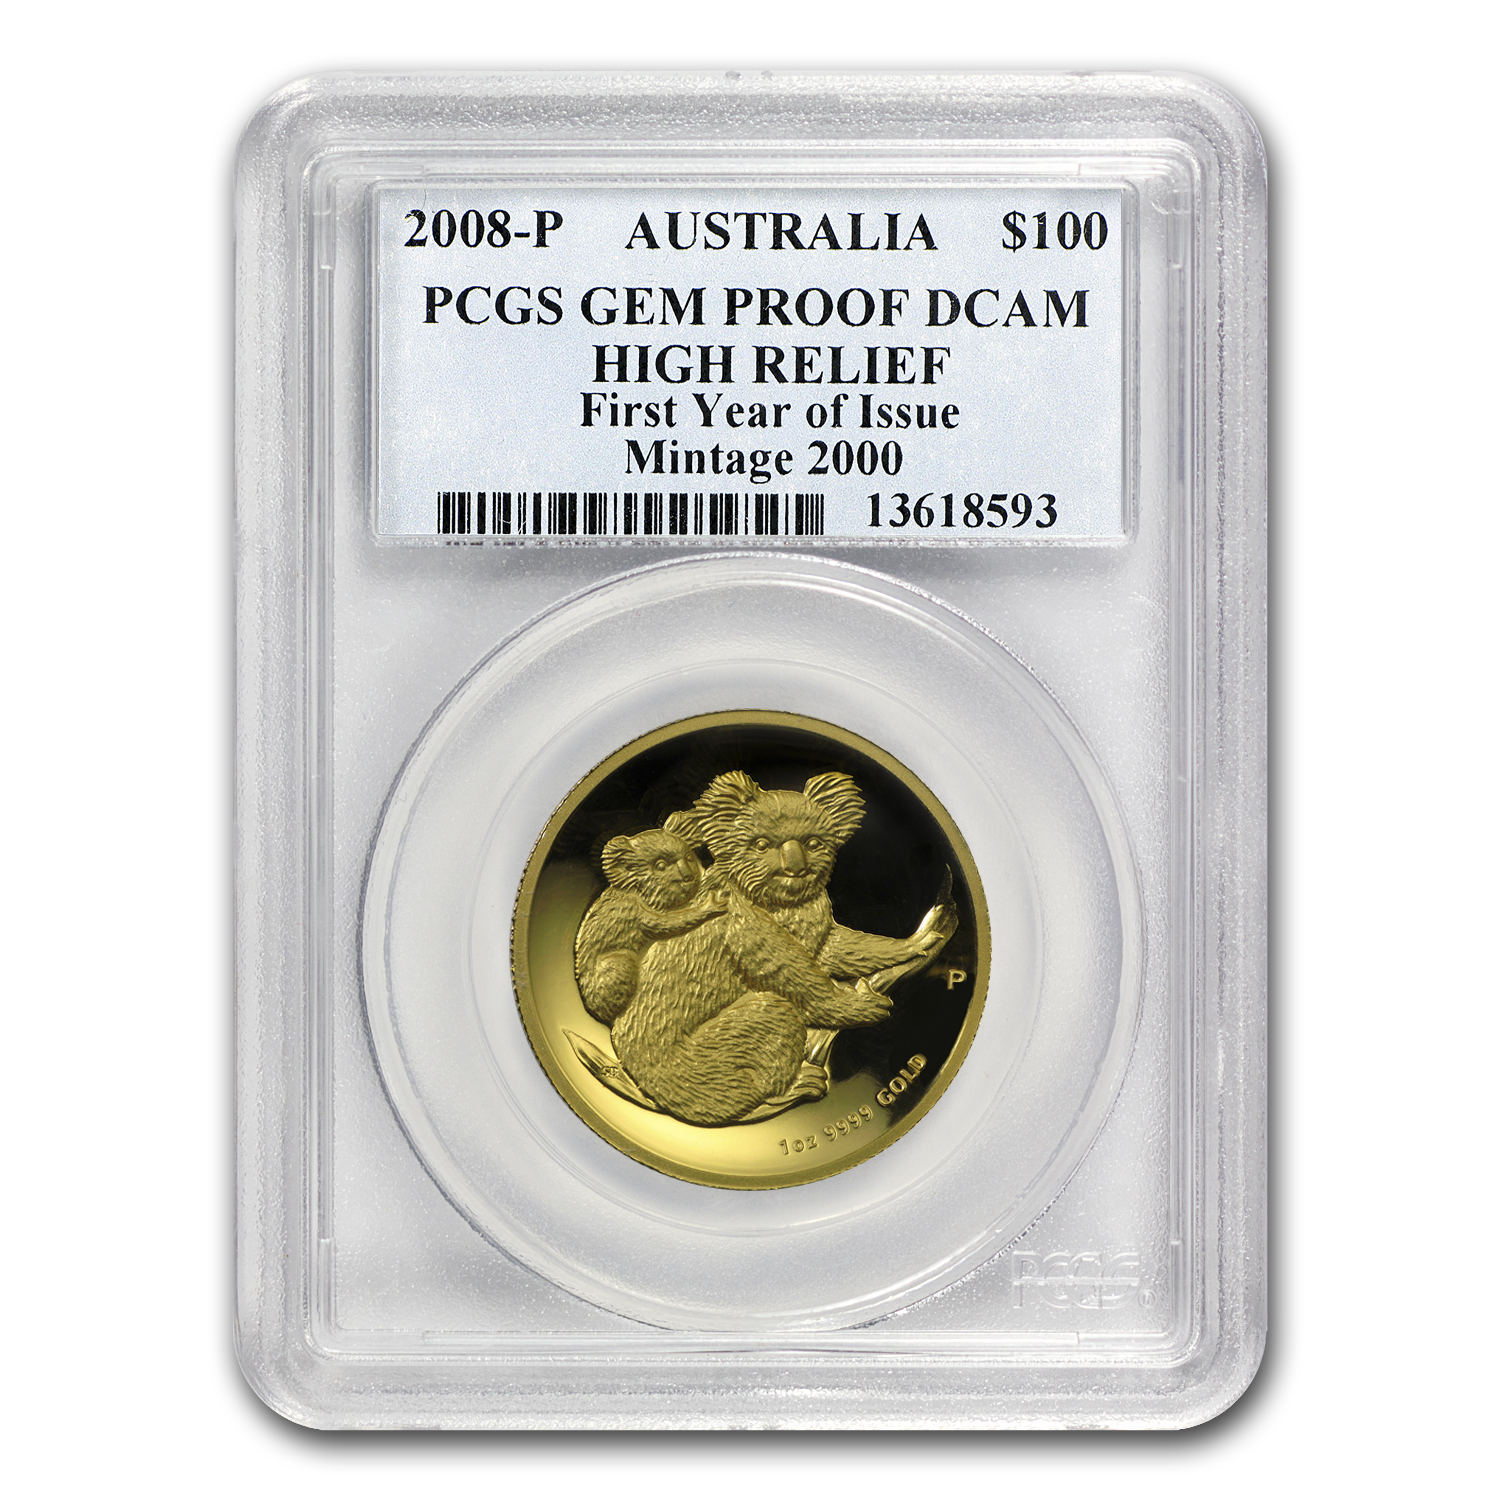 2008-P 1 oz Proof Gold Koala High Relief Gem Proof DCAM PCGS